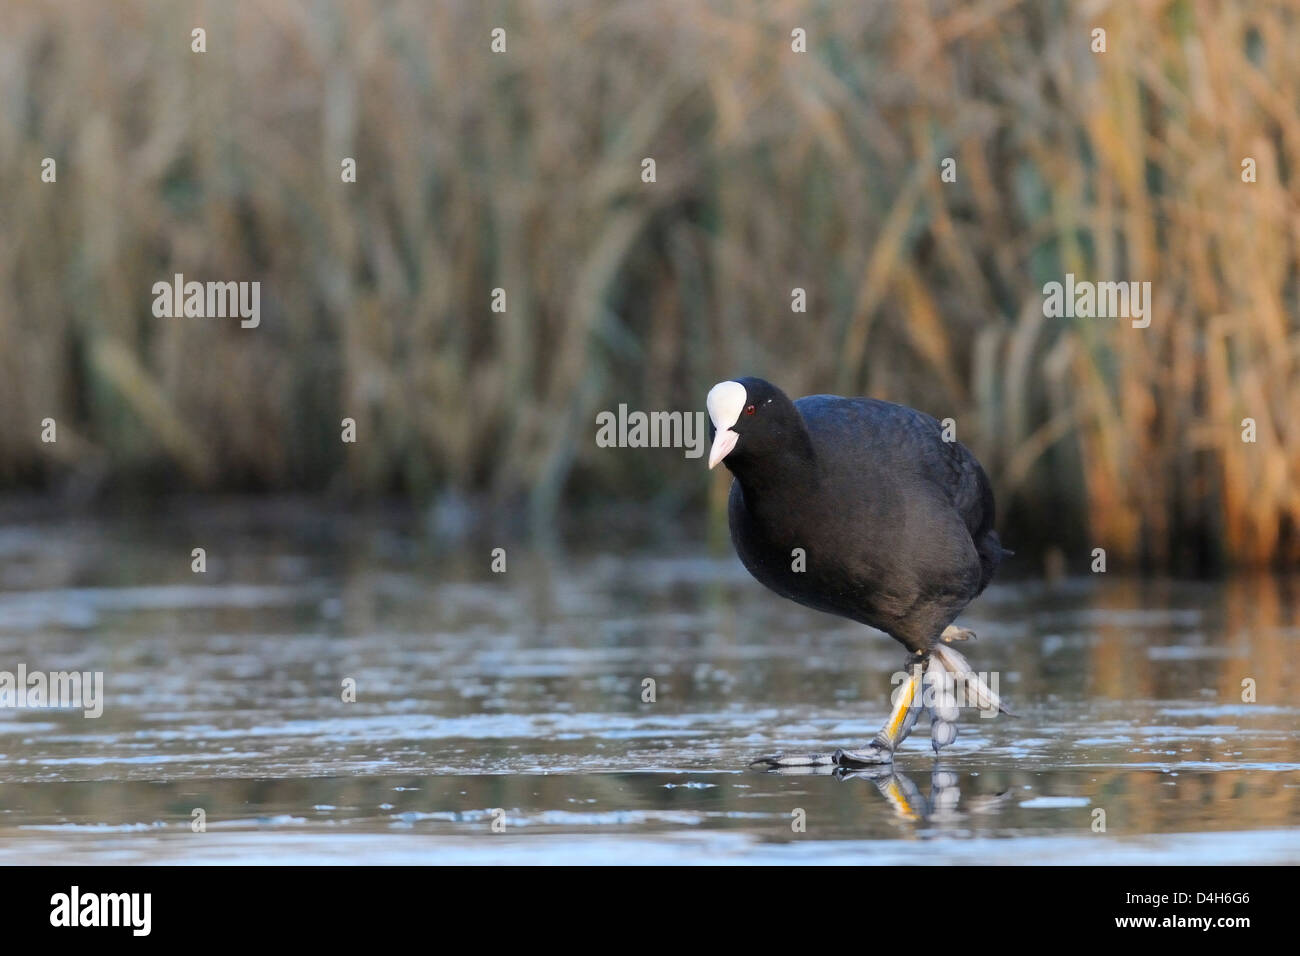 Coot (Fulica atra) walking on frozen lake in late afternoon sunshine, Wiltshire, England, UK - Stock Image